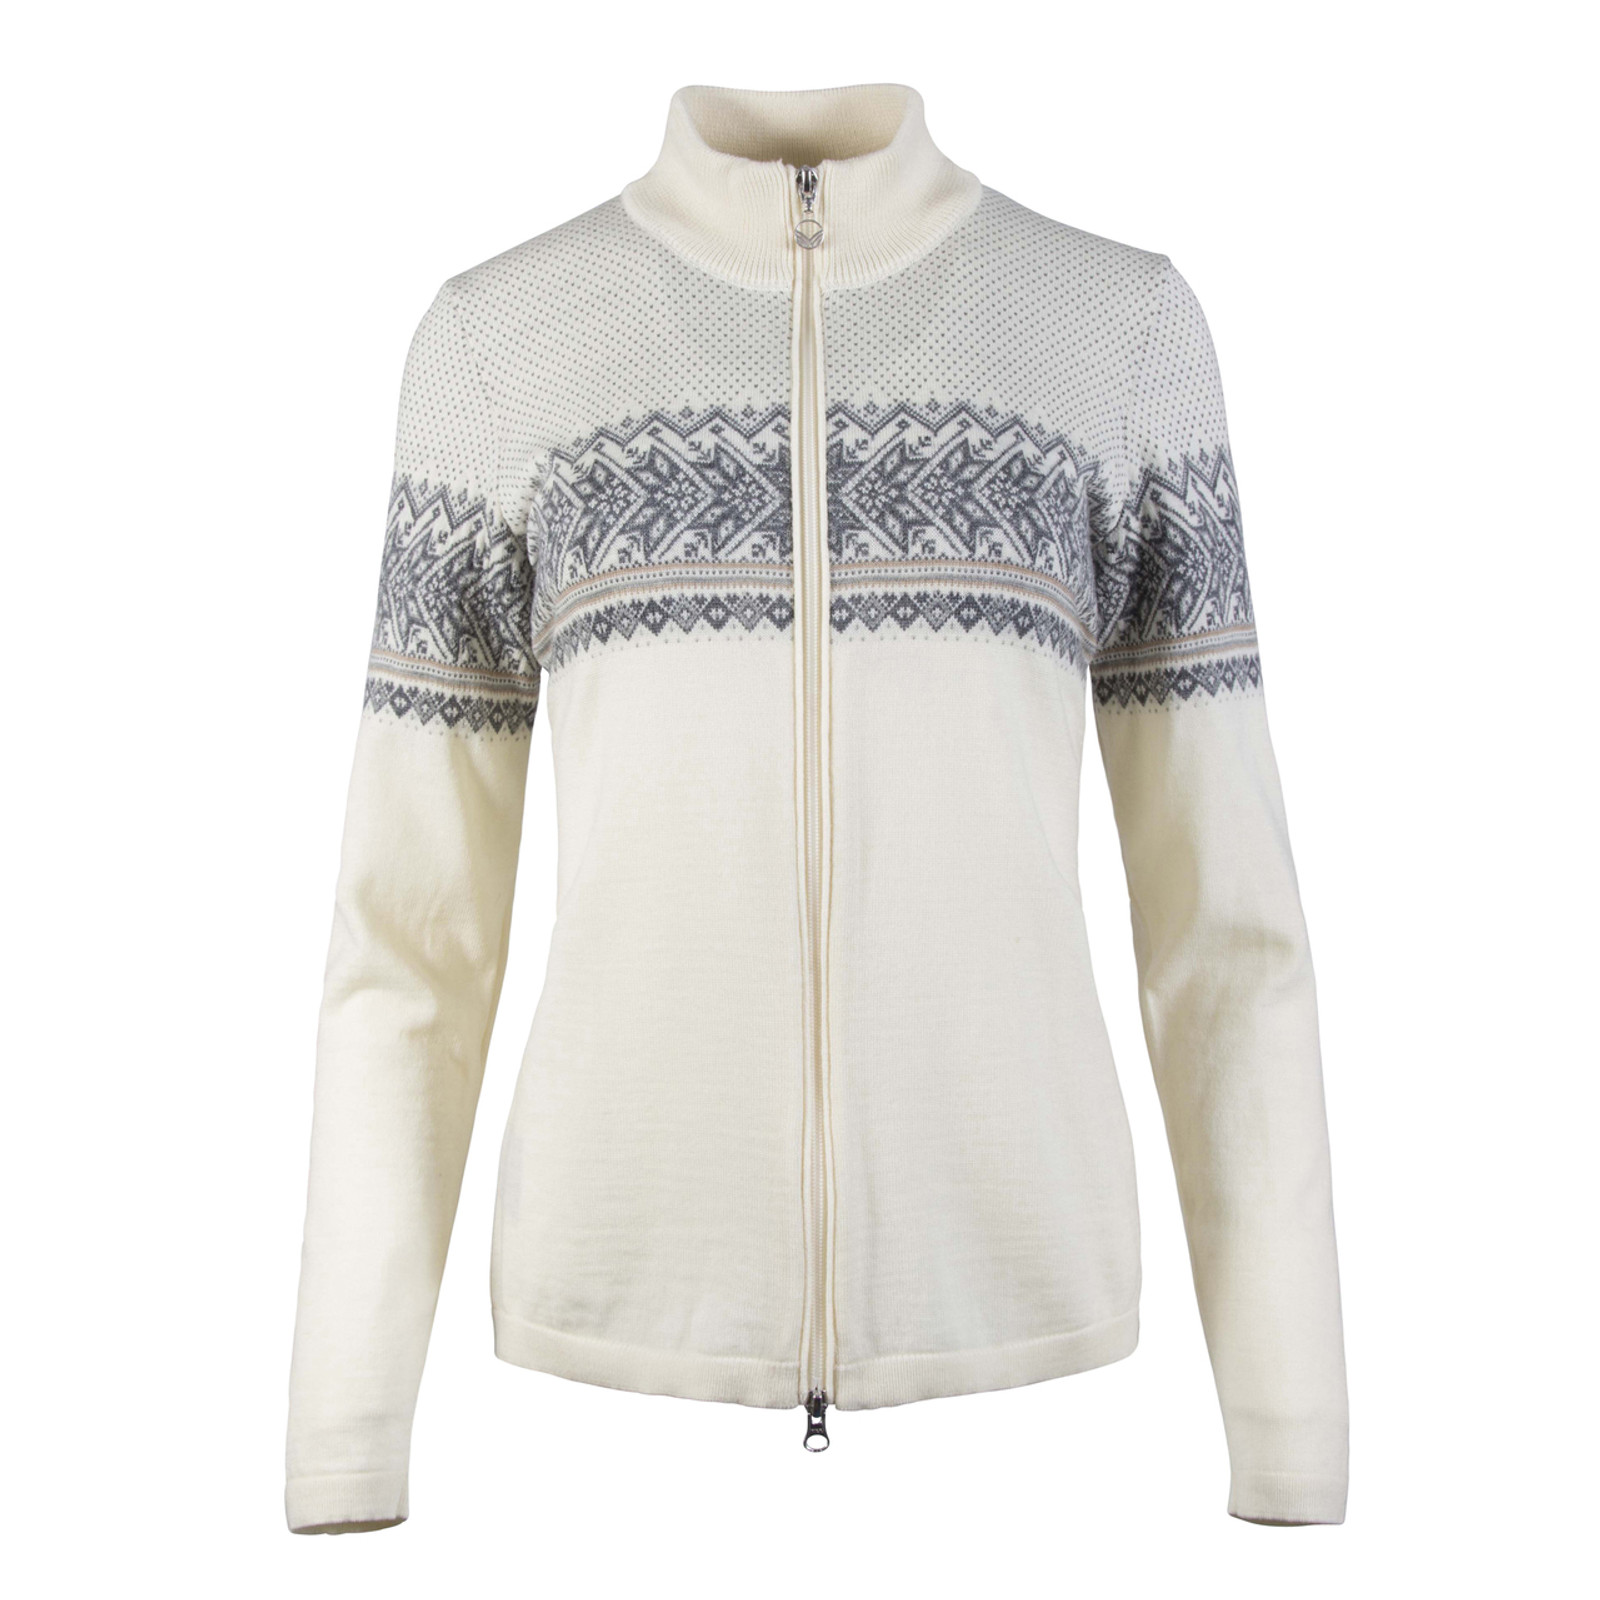 Dale of Norway, Hovden  cardigan, ladies, in Off White/Light Charcoal/Smoke/Beige-83201-A, on sale at The Nordic Shop